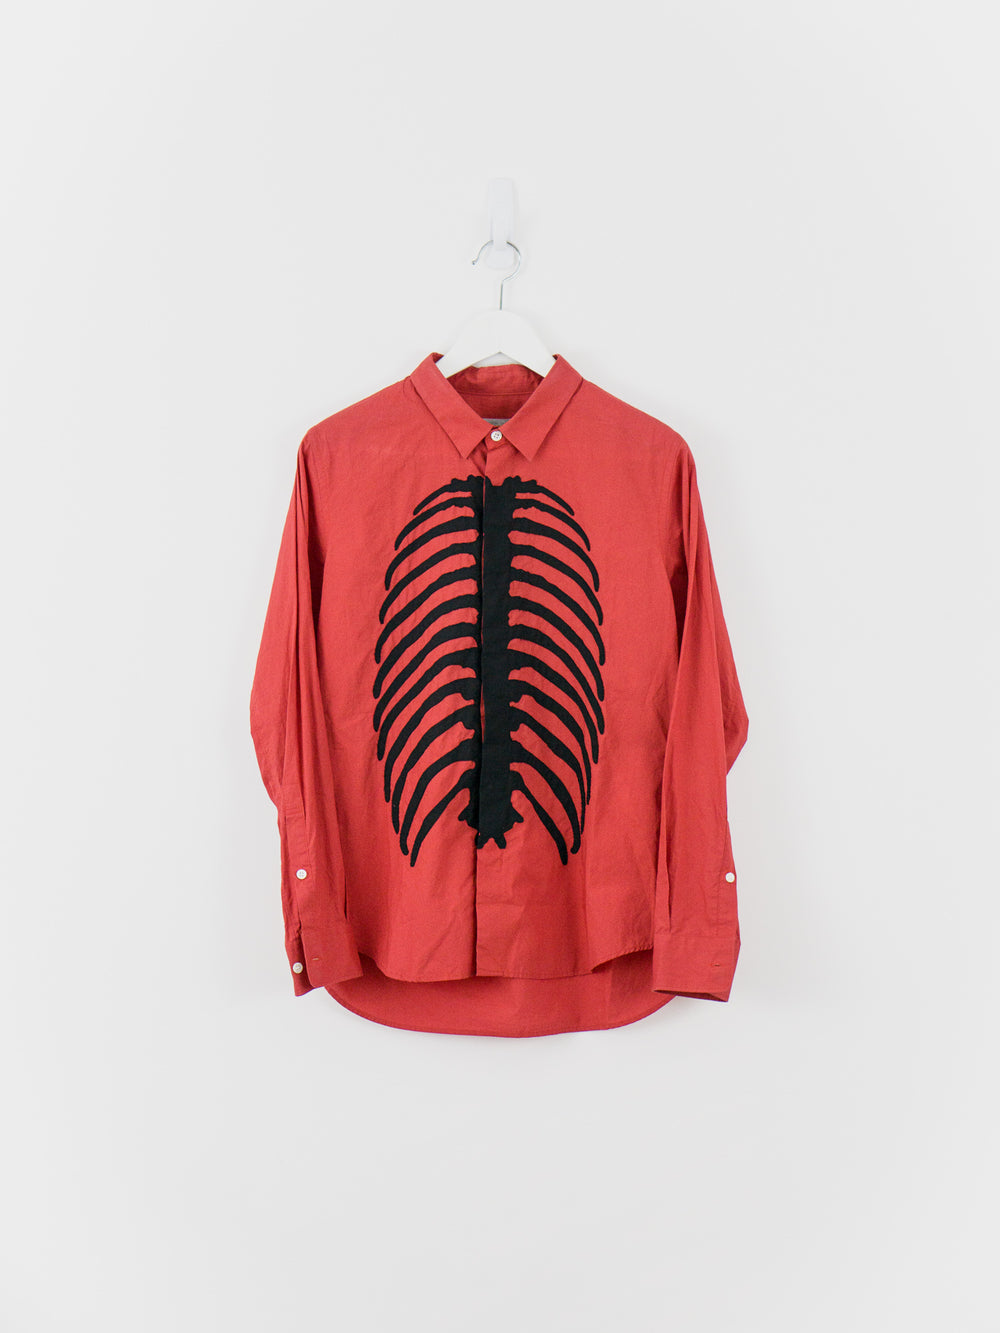 Undercover AW13 Ribcage Dress Shirt